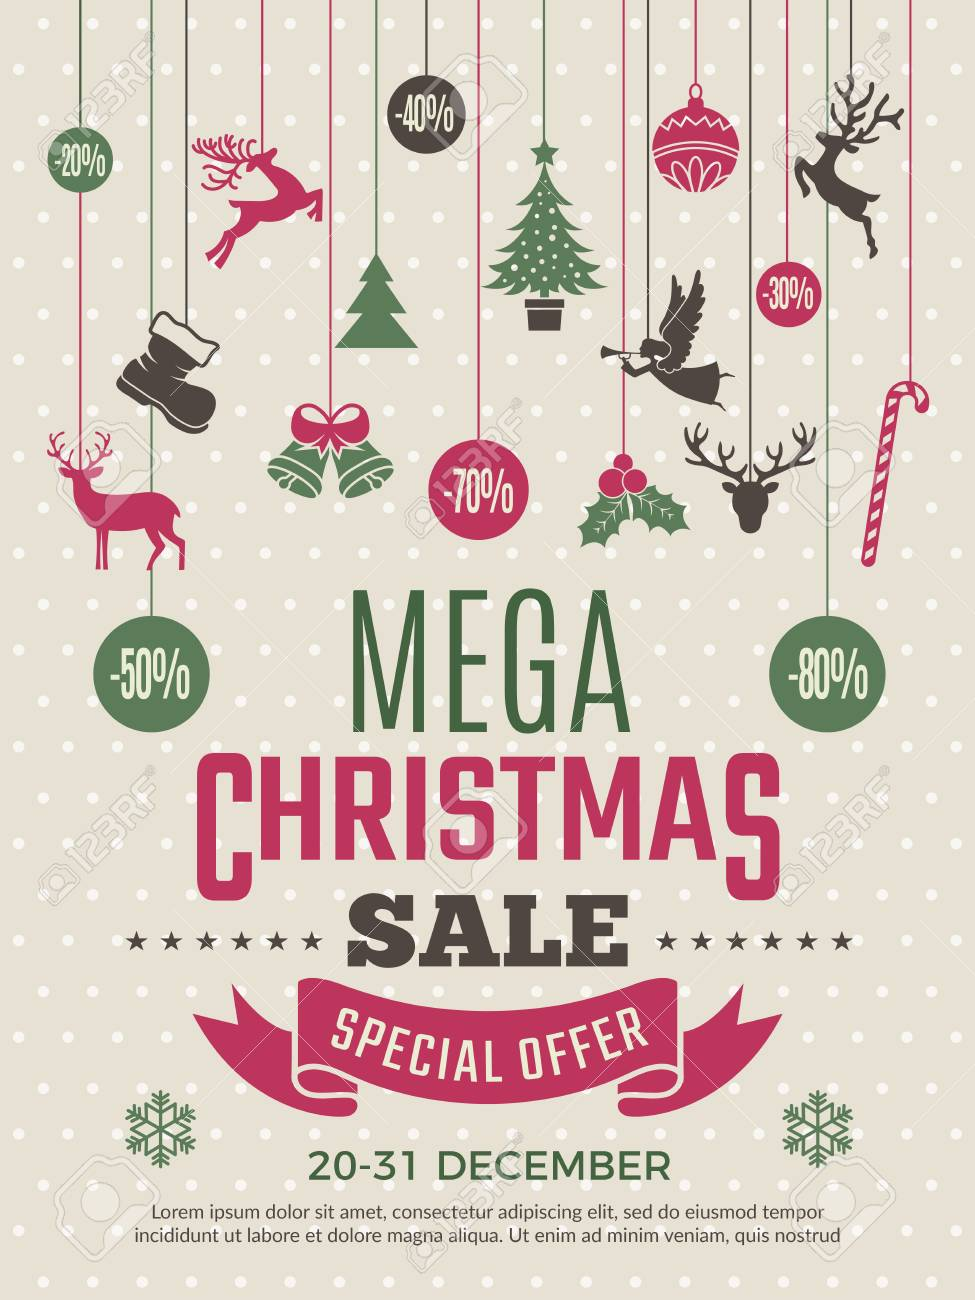 Christmas Poster For Big Sales New Year Voucher Deals Discounts